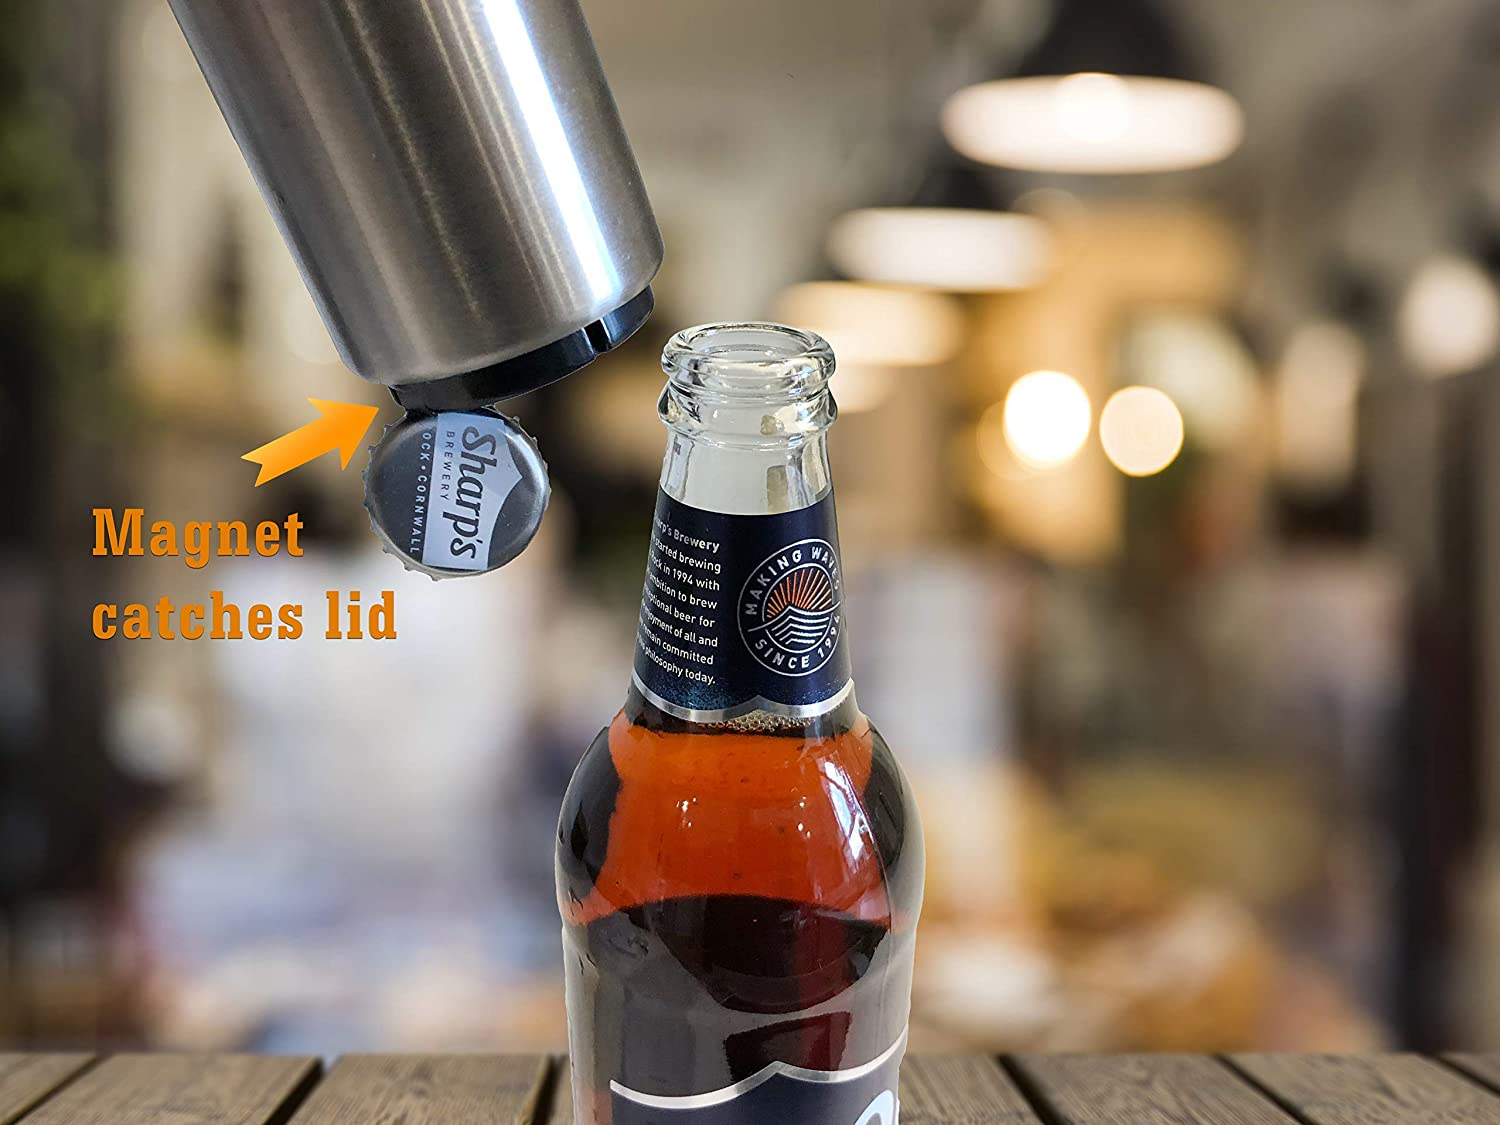 Silver Opens Glass Bottles in Half a Second Kitchen Gadgets Wildman Beer Bottle Opener with Magnet